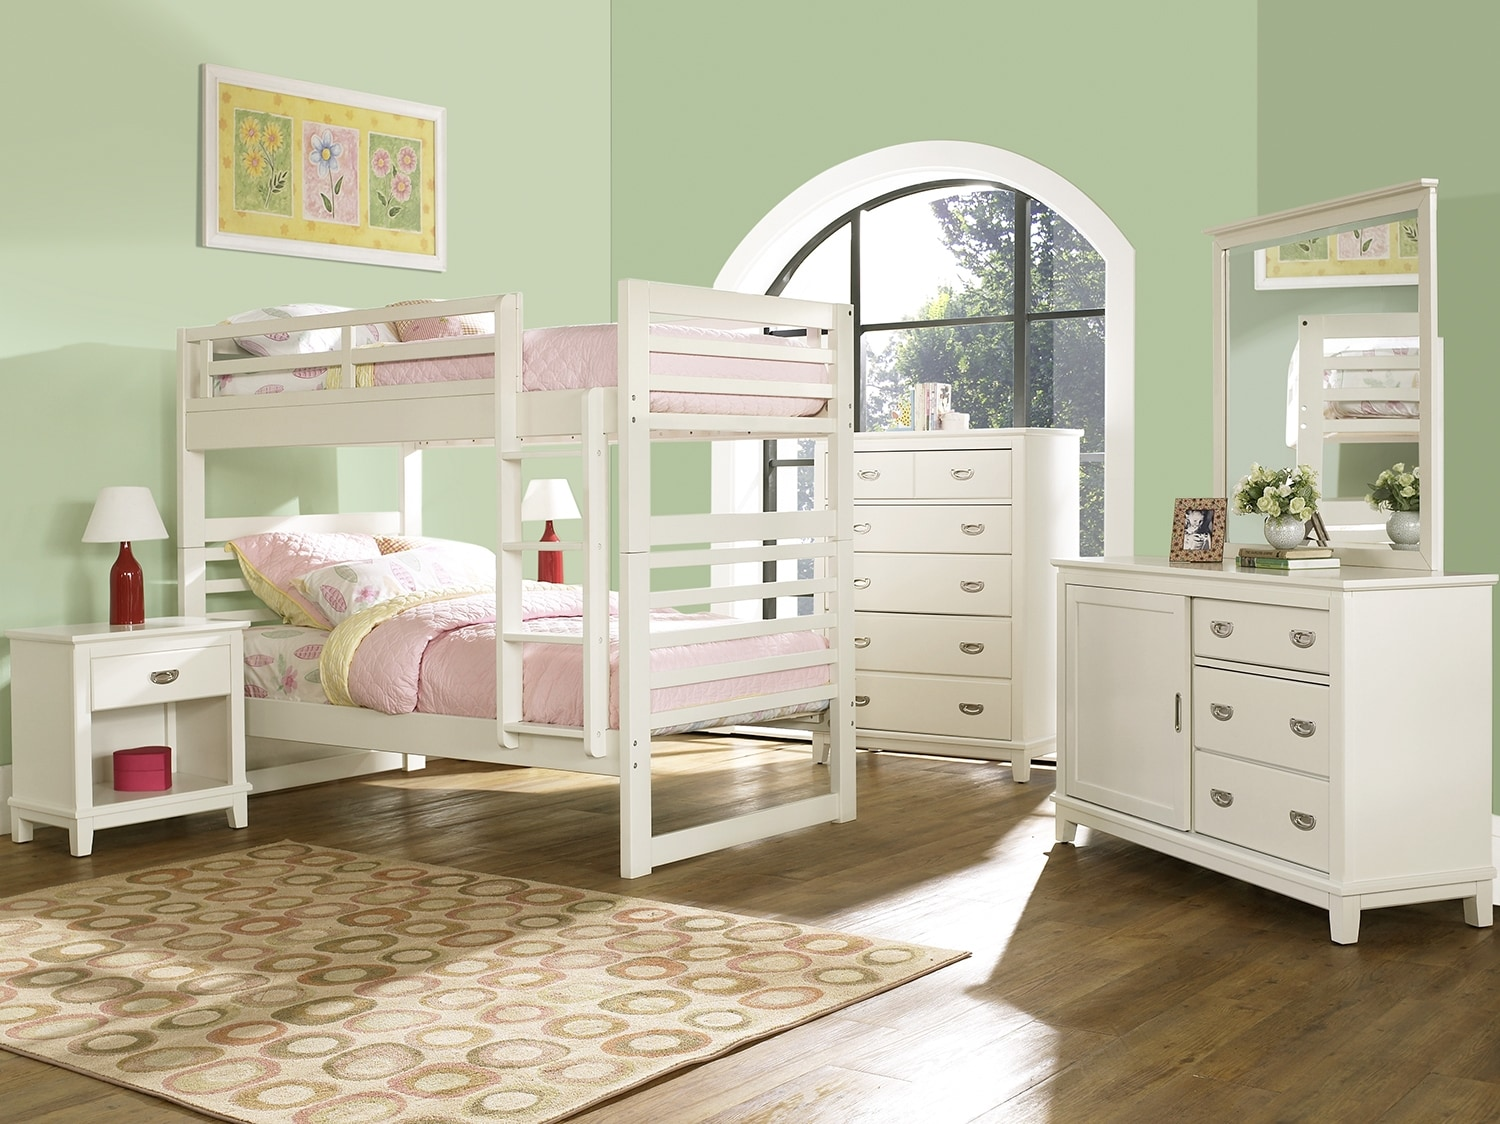 Chadwick 8-Piece Bedroom Package with Twin Bunk Bed – White